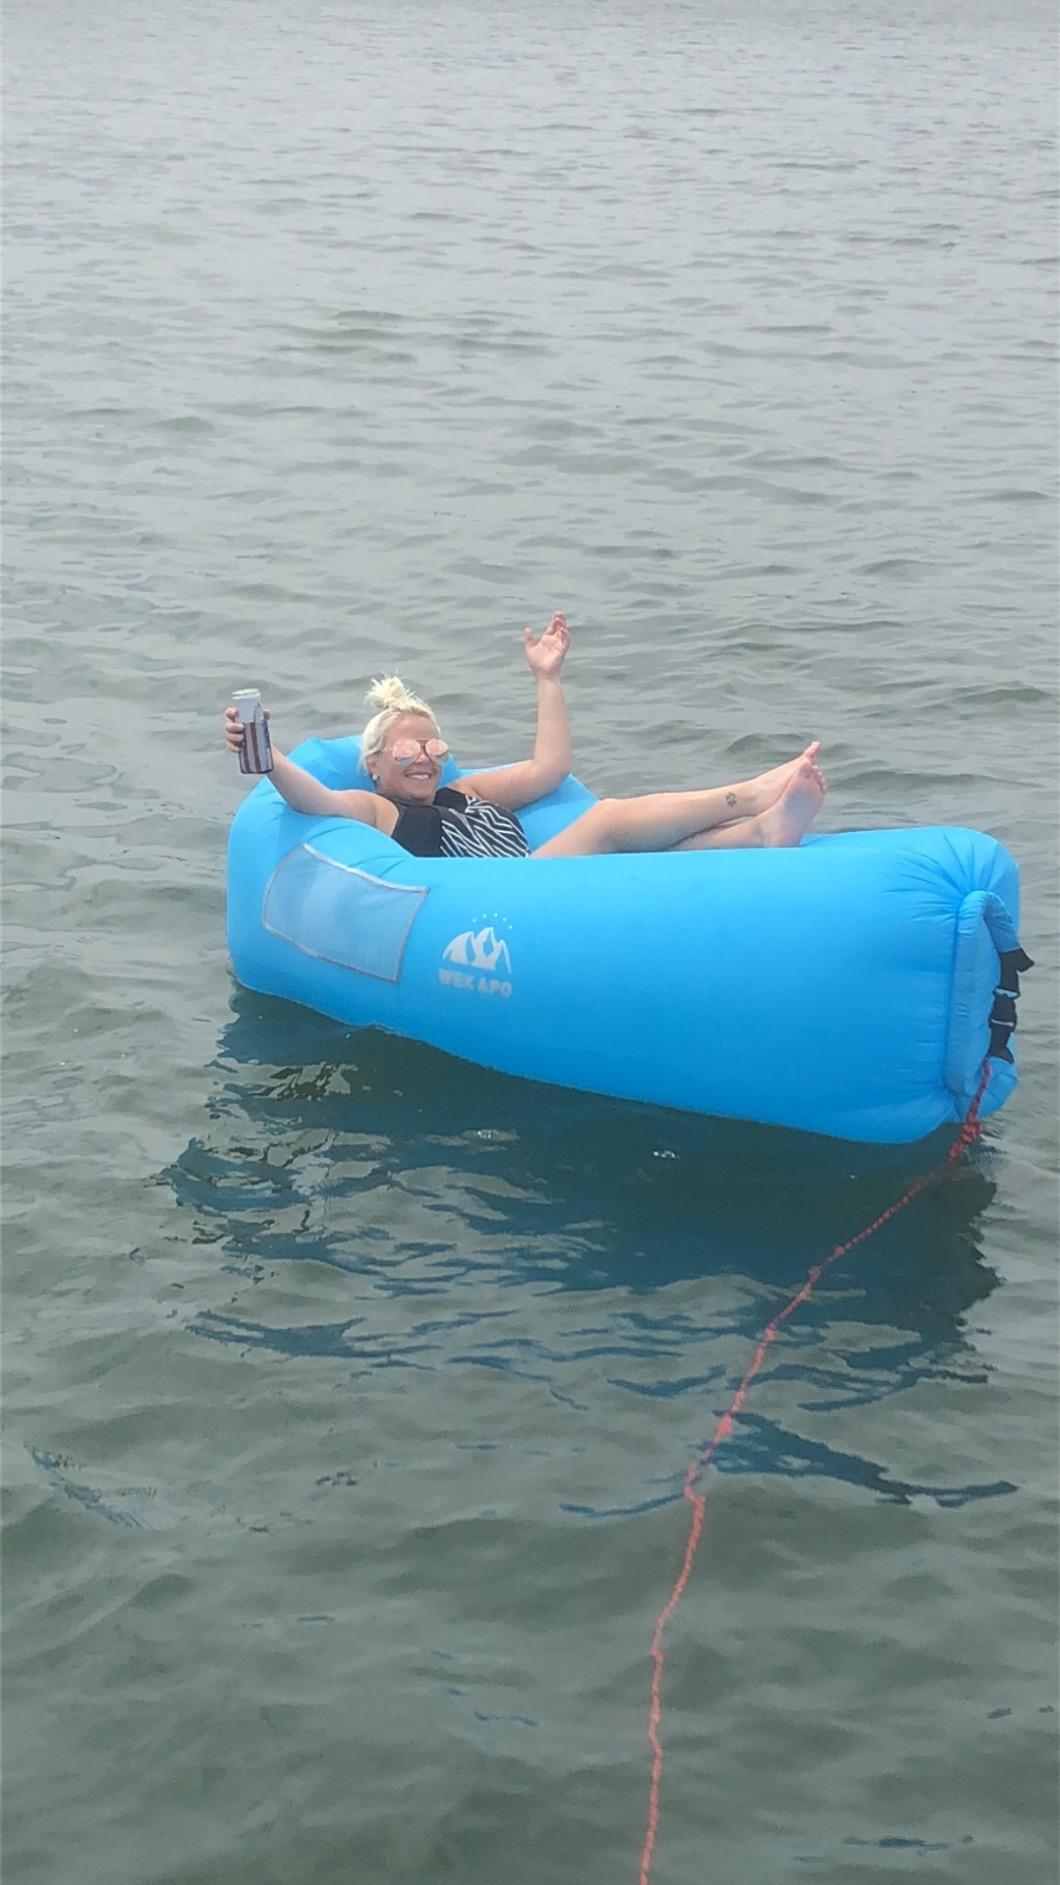 WEKAPO Inflatable Lounger Air Sofa Hammock-Love this! Works great on and off the water!